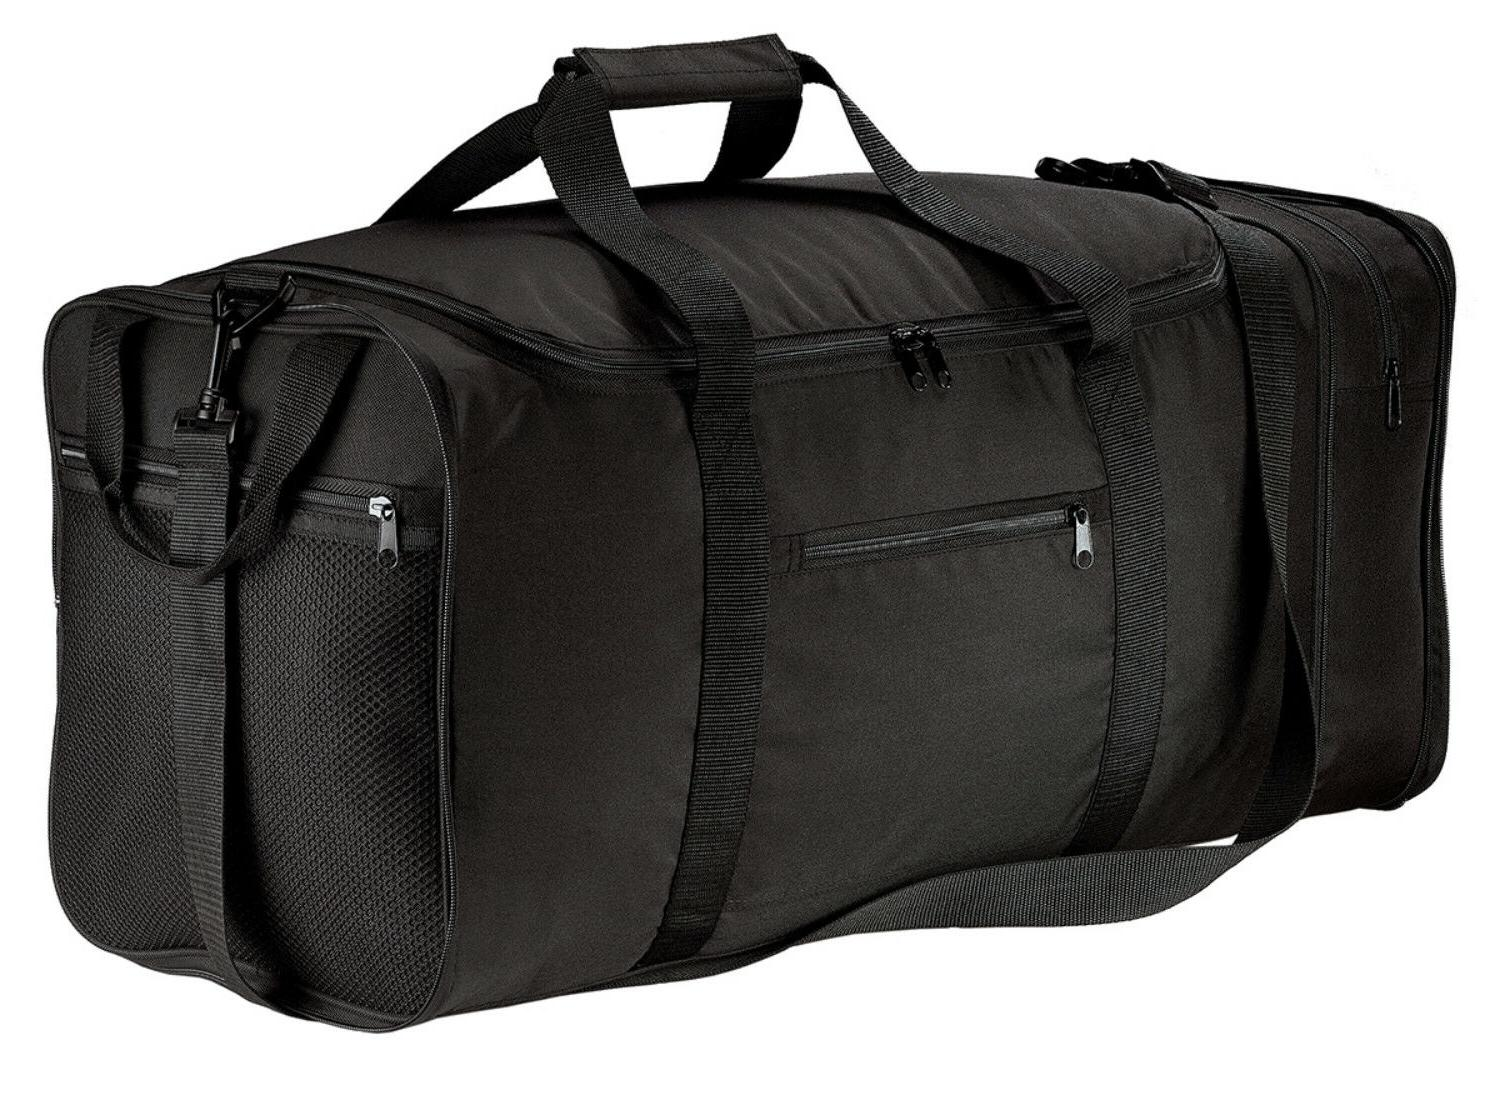 extra large packable duffle bag travel gym